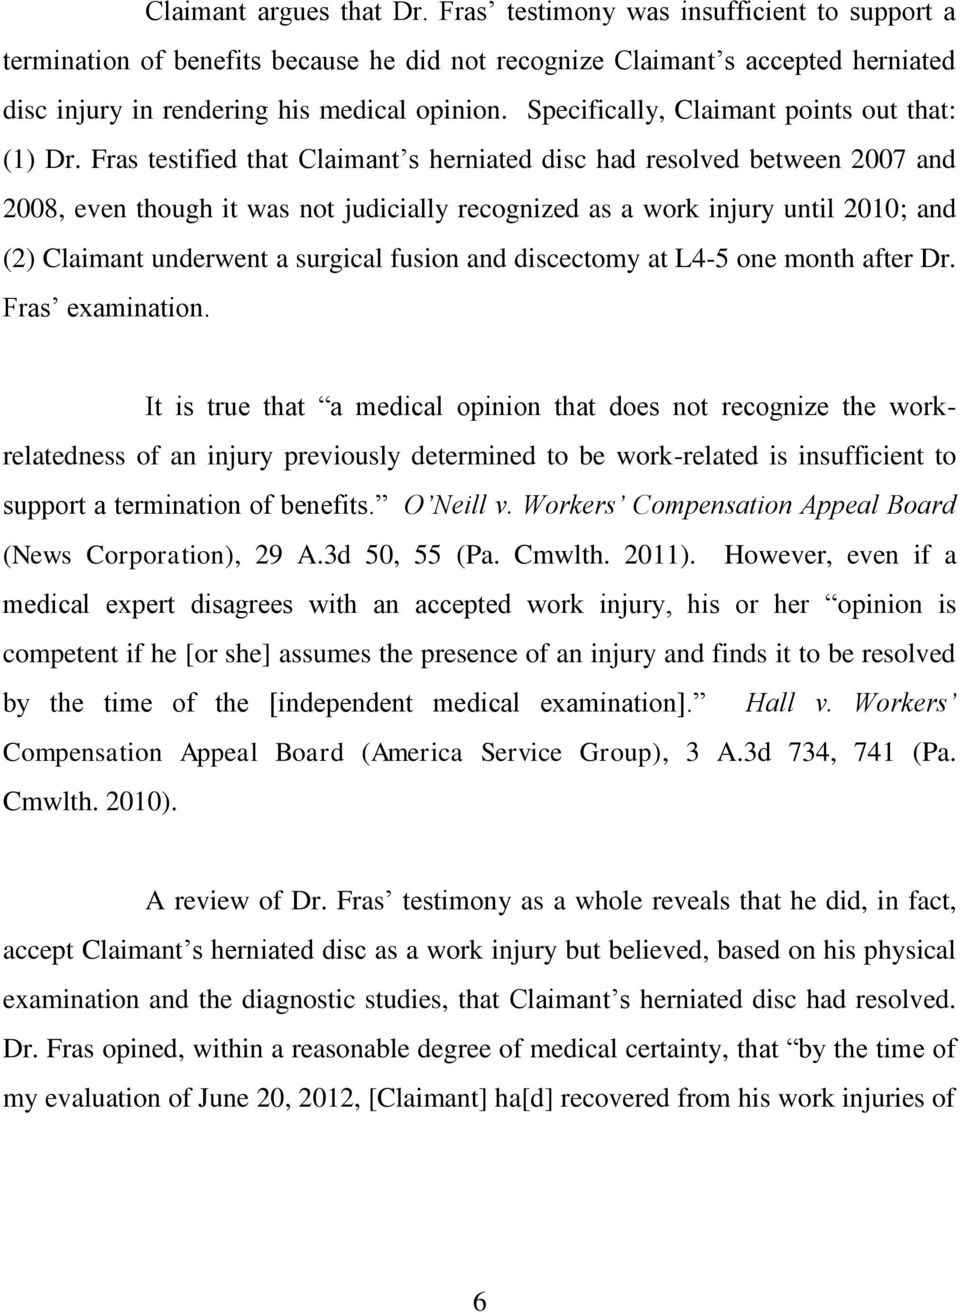 Fras testified that Claimant s herniated disc had resolved between 2007 and 2008, even though it was not judicially recognized as a work injury until 2010; and (2) Claimant underwent a surgical